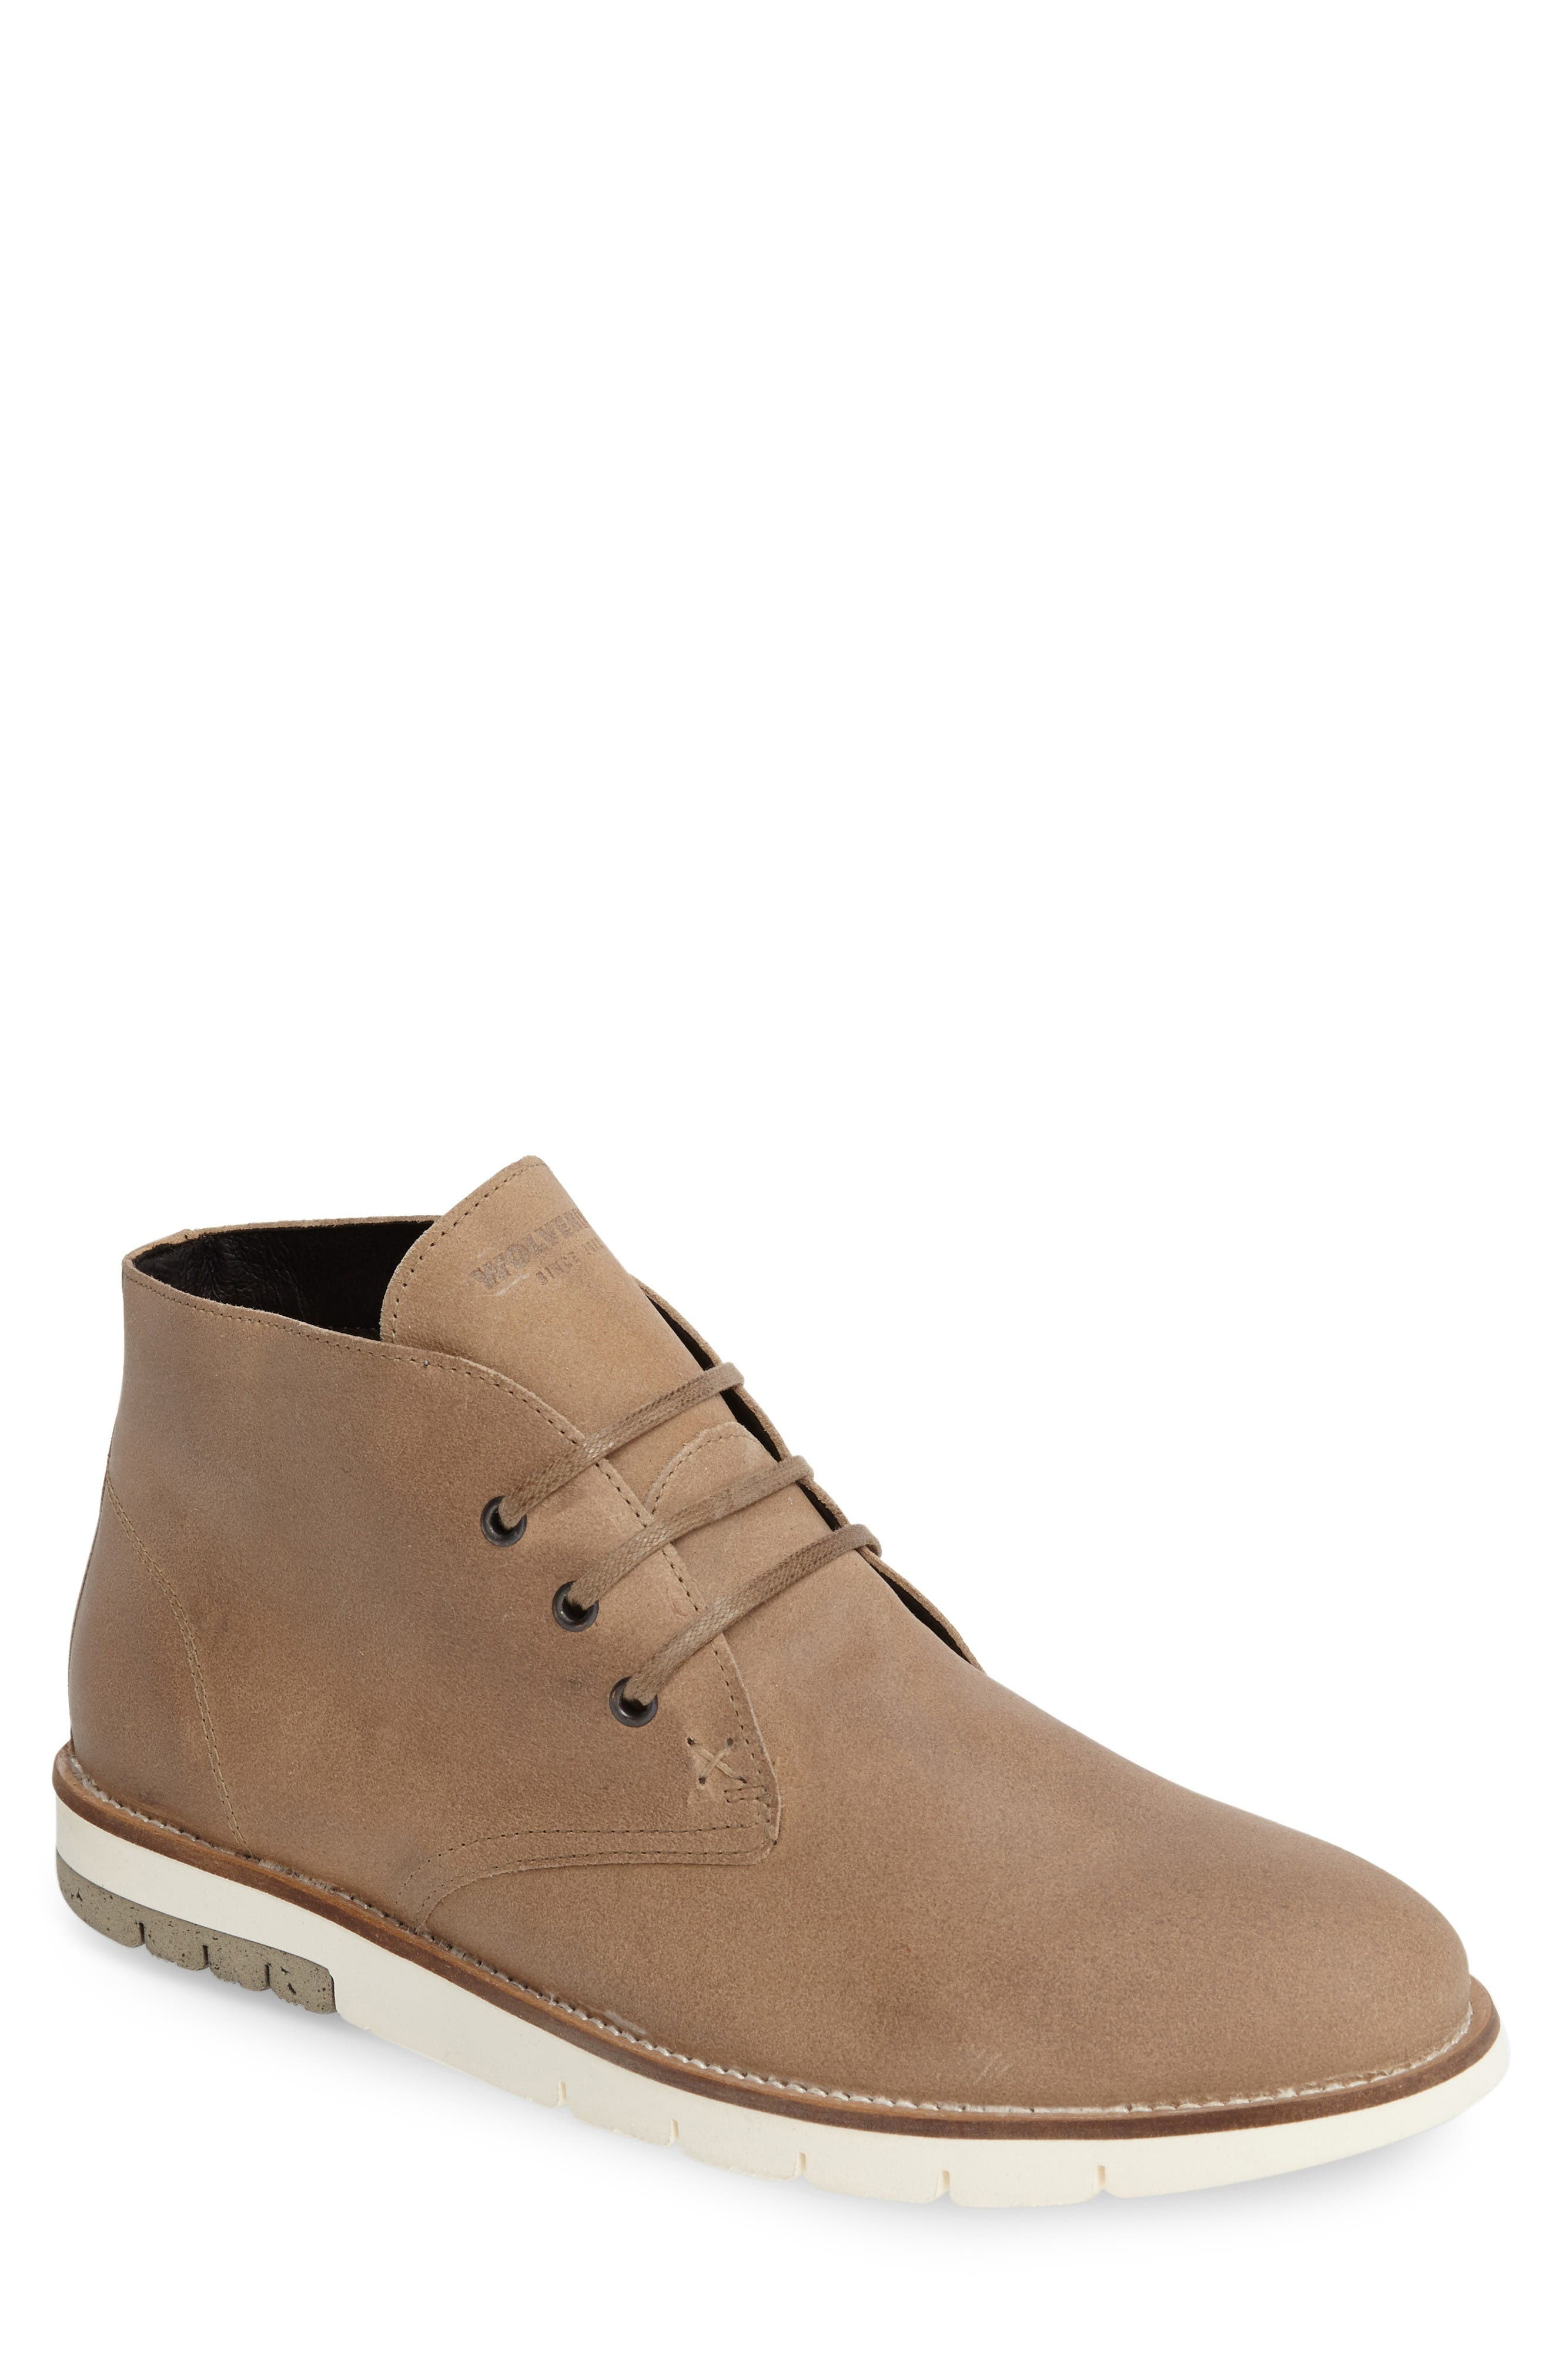 Gibson Chukka Boot,                         Main,                         color, Stone Suede